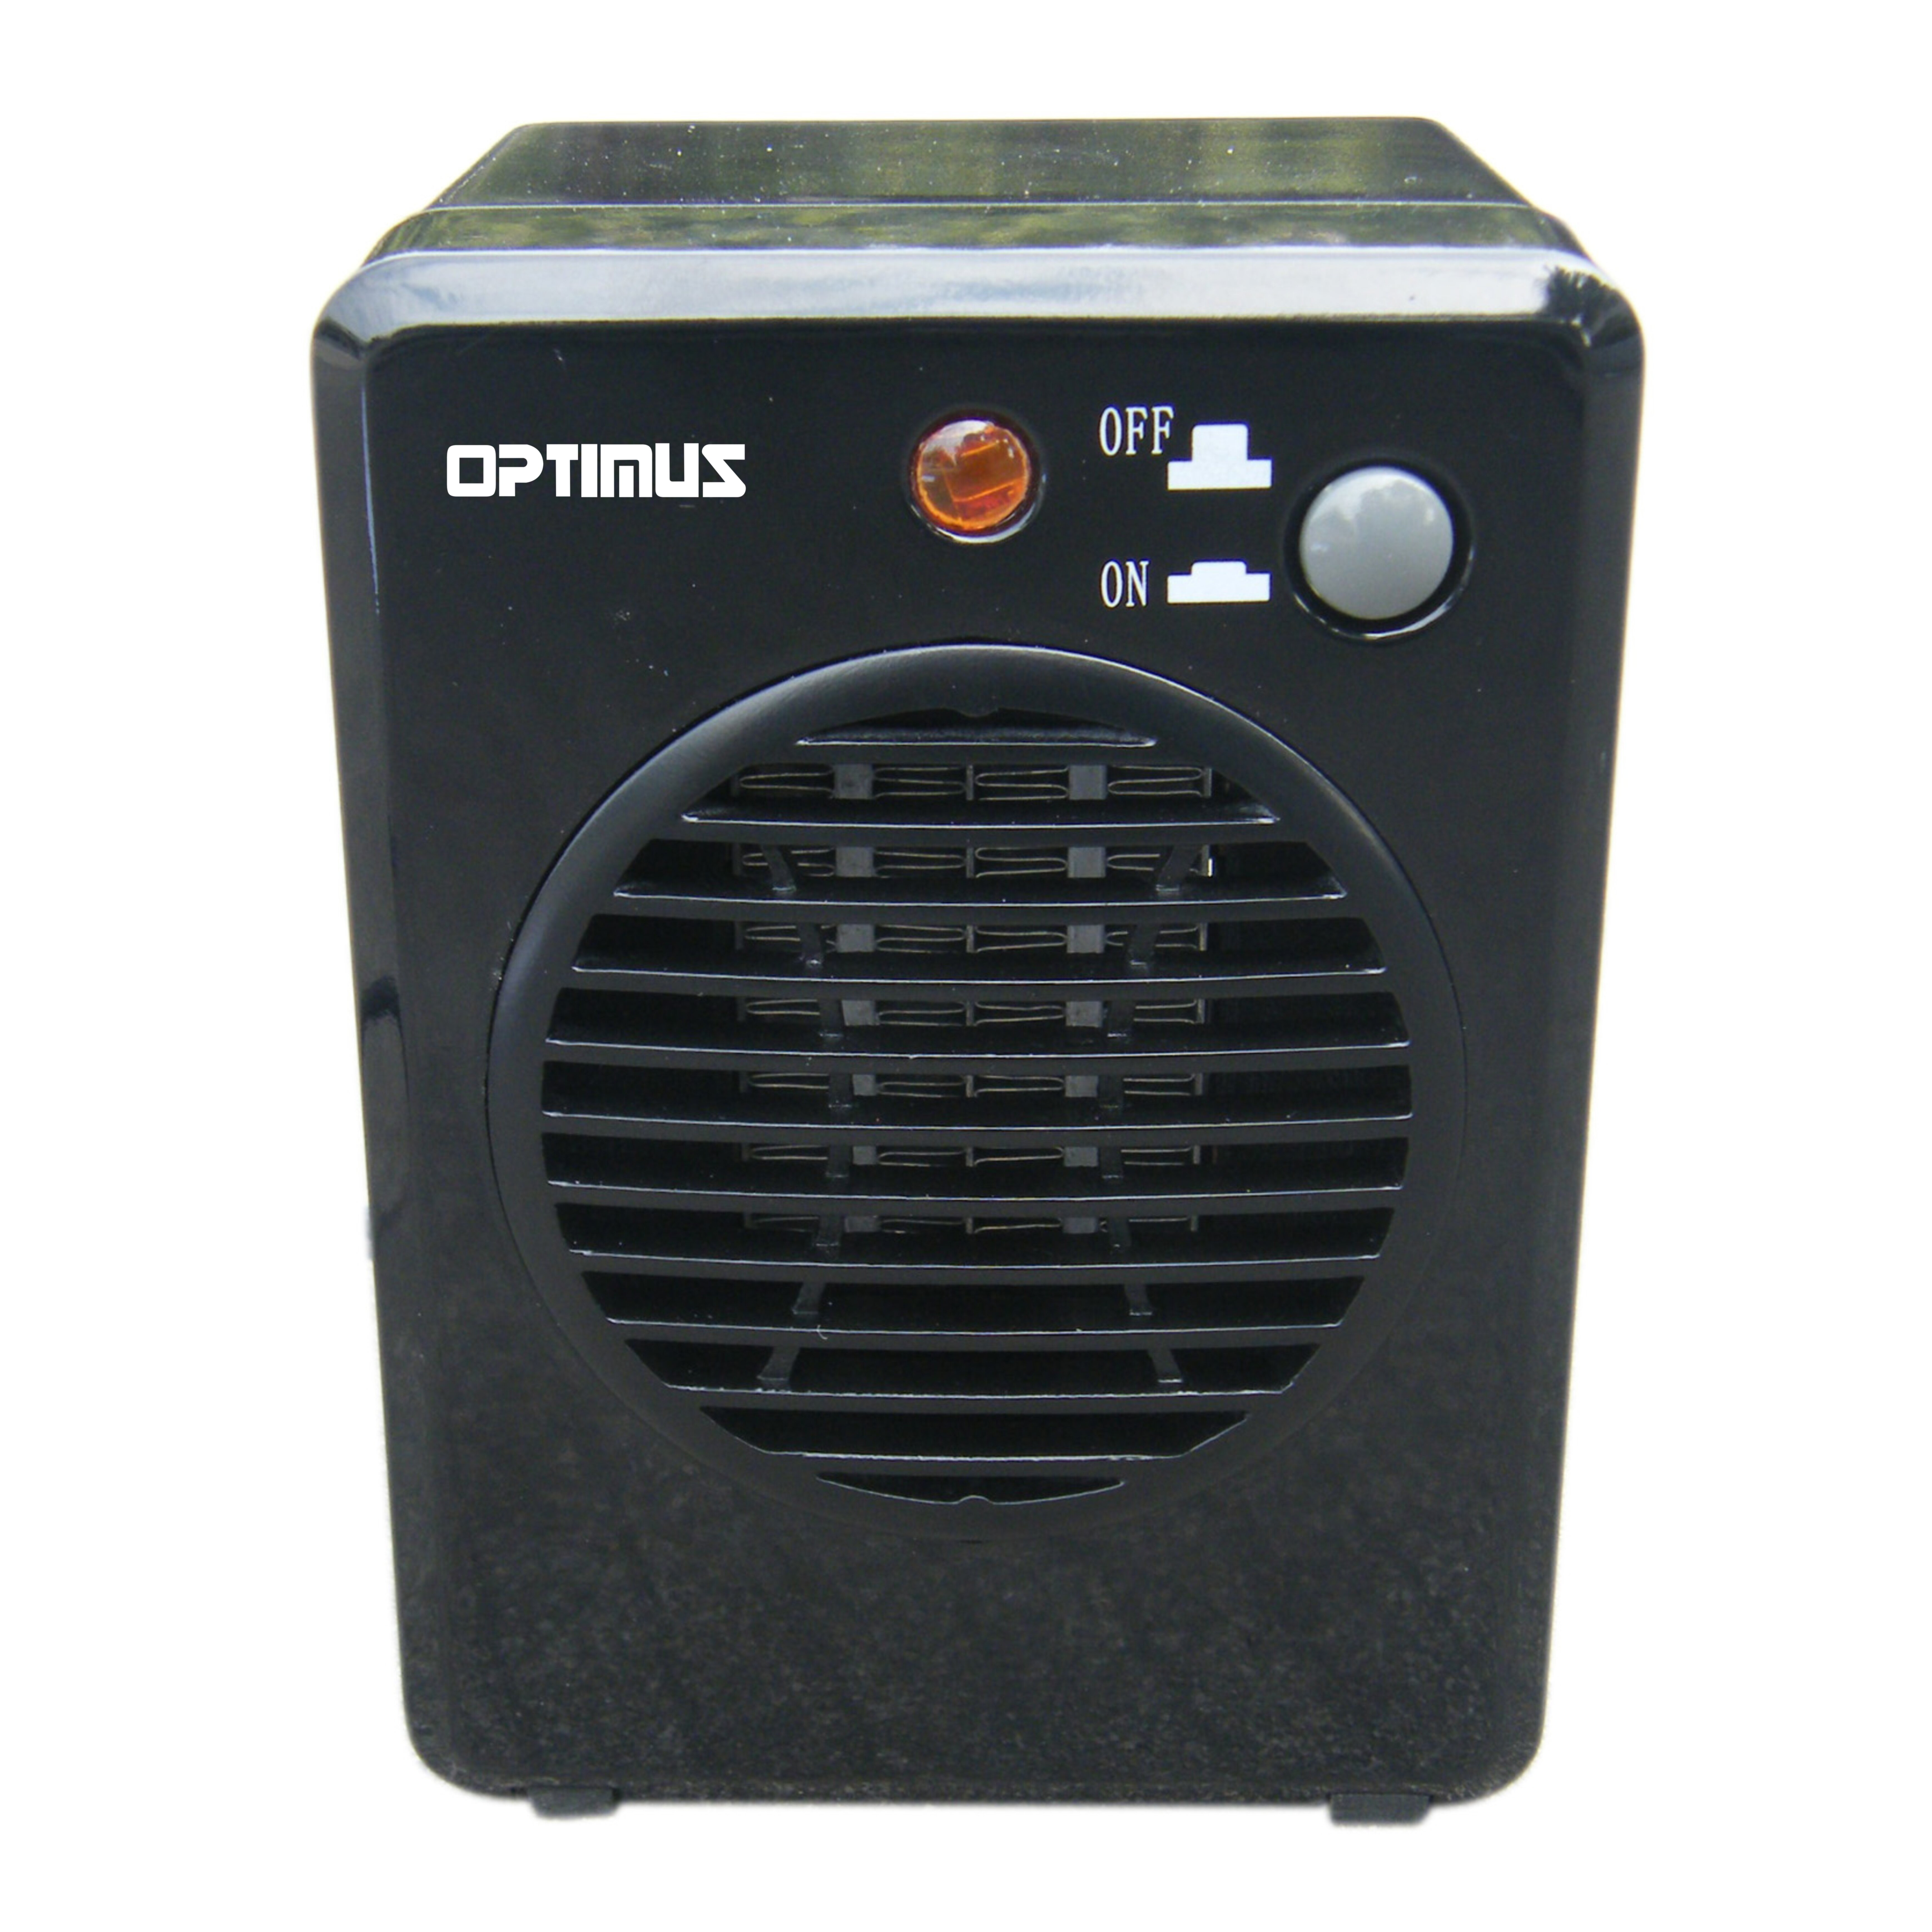 Optimus 300 watt portable electric fan compact heater reviews wayfair - Best small space heaters reviews concept ...